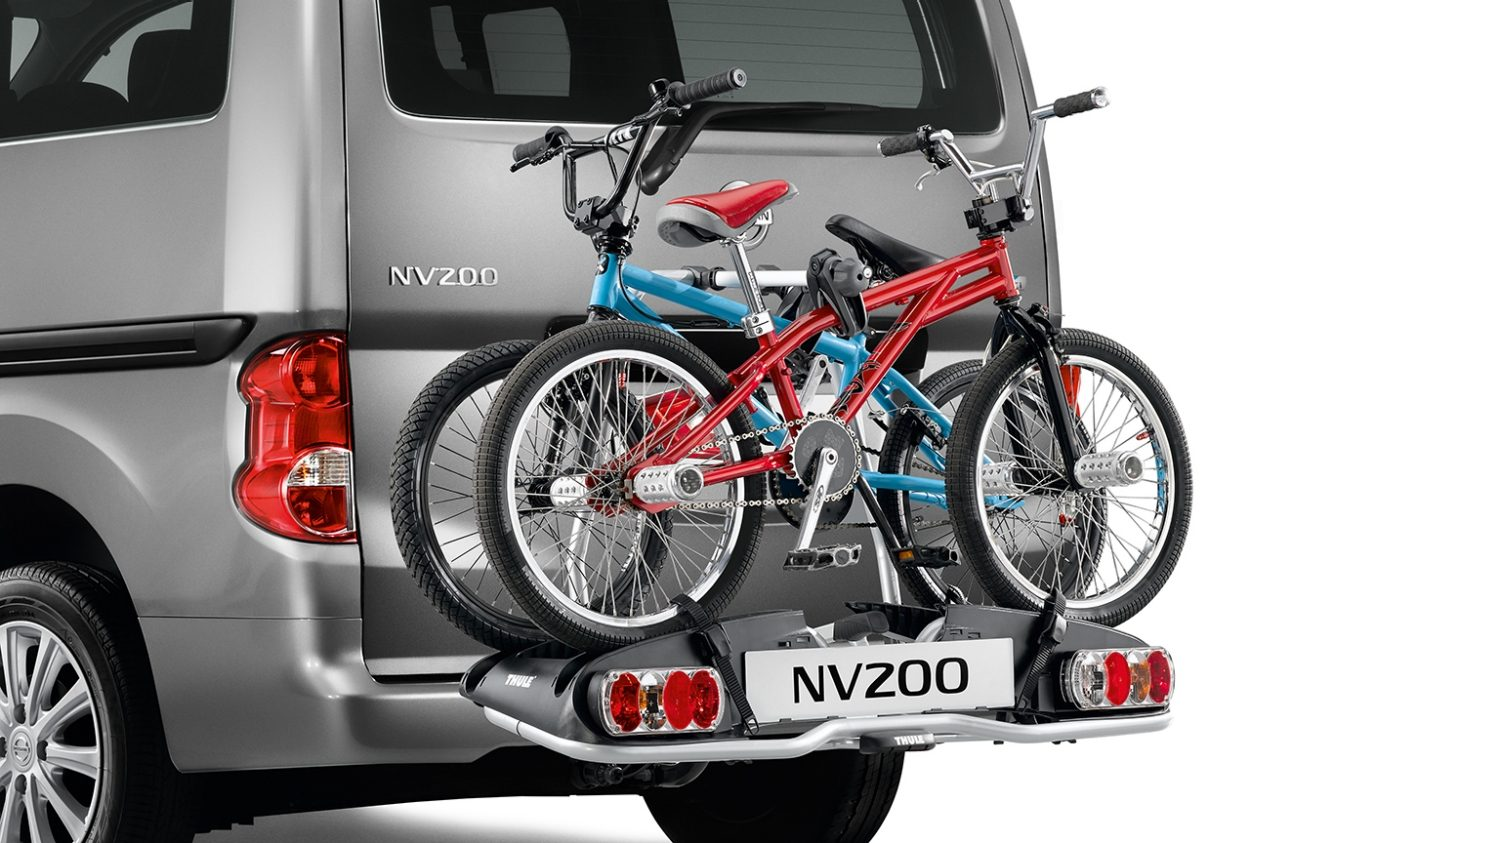 Nissan Evalia - Transportation - Bike carrier towbar mounted 13 pins 2 bikes - Foldable - Euroride